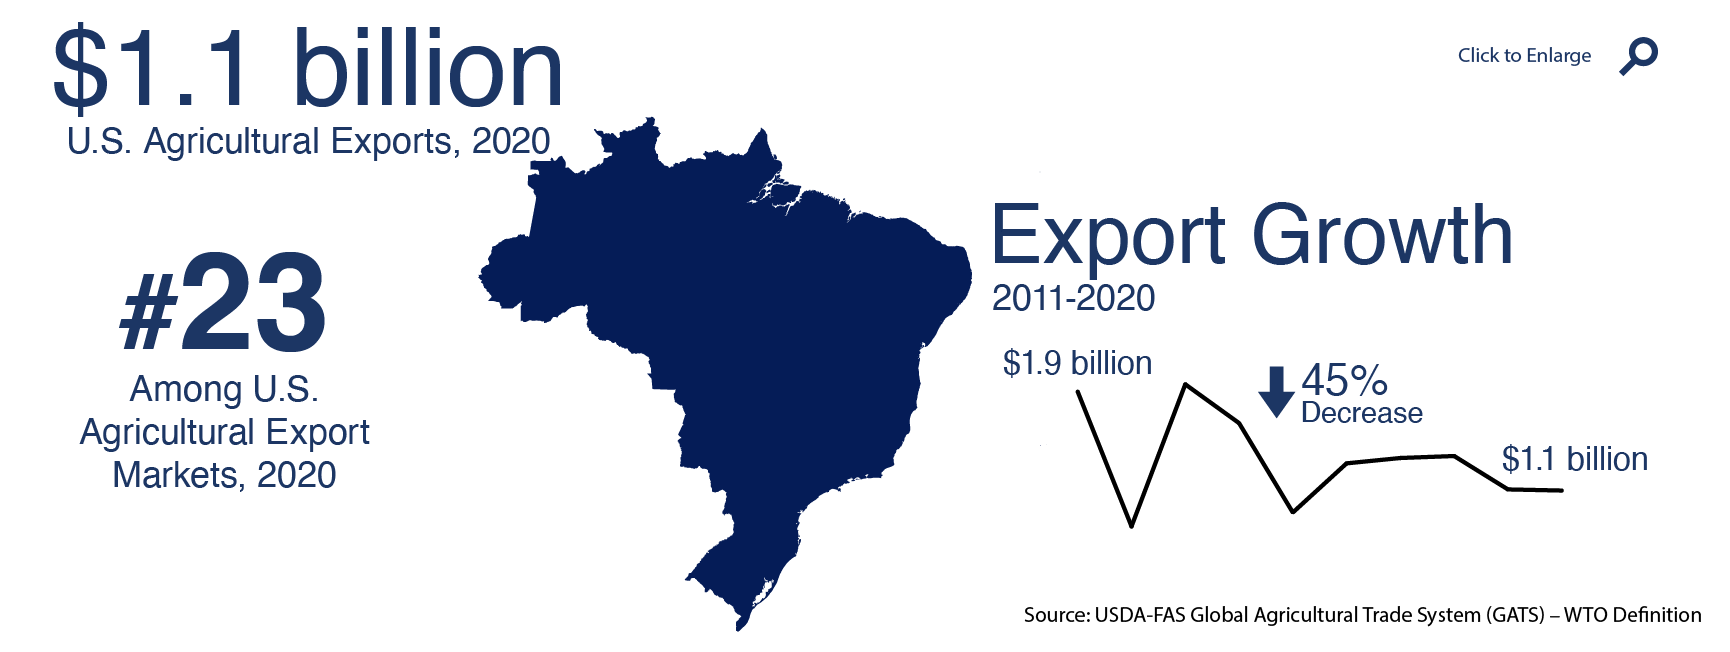 Infographic showing U.S. agricultural trade with Brazil in 2020